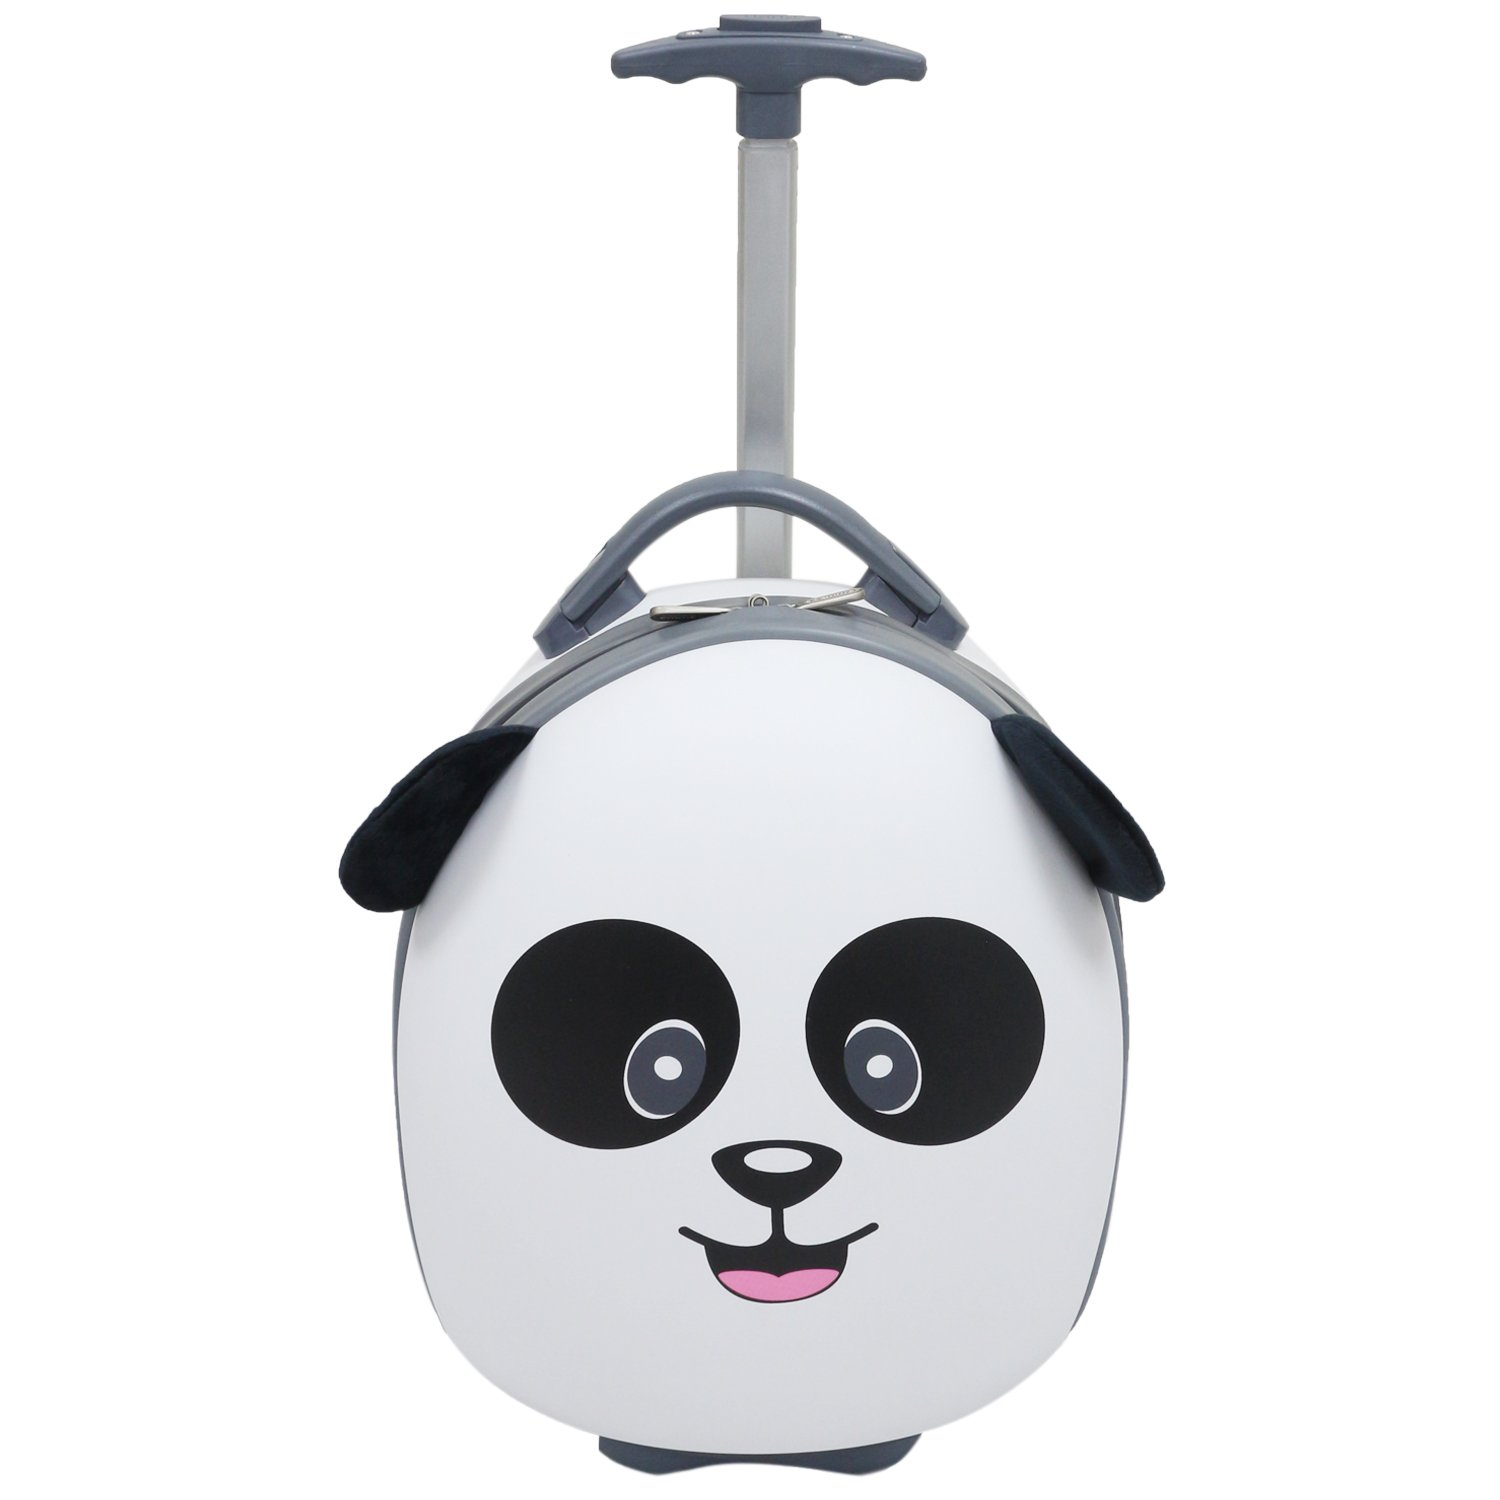 "Emmzoe Kids & Toddler 15"" Carry On Animal Trolley Hardshell Luggage - Lightweight EVA, Dent Proof, Adjustable Handle for Age 2+ (Papa Panda Bear)"